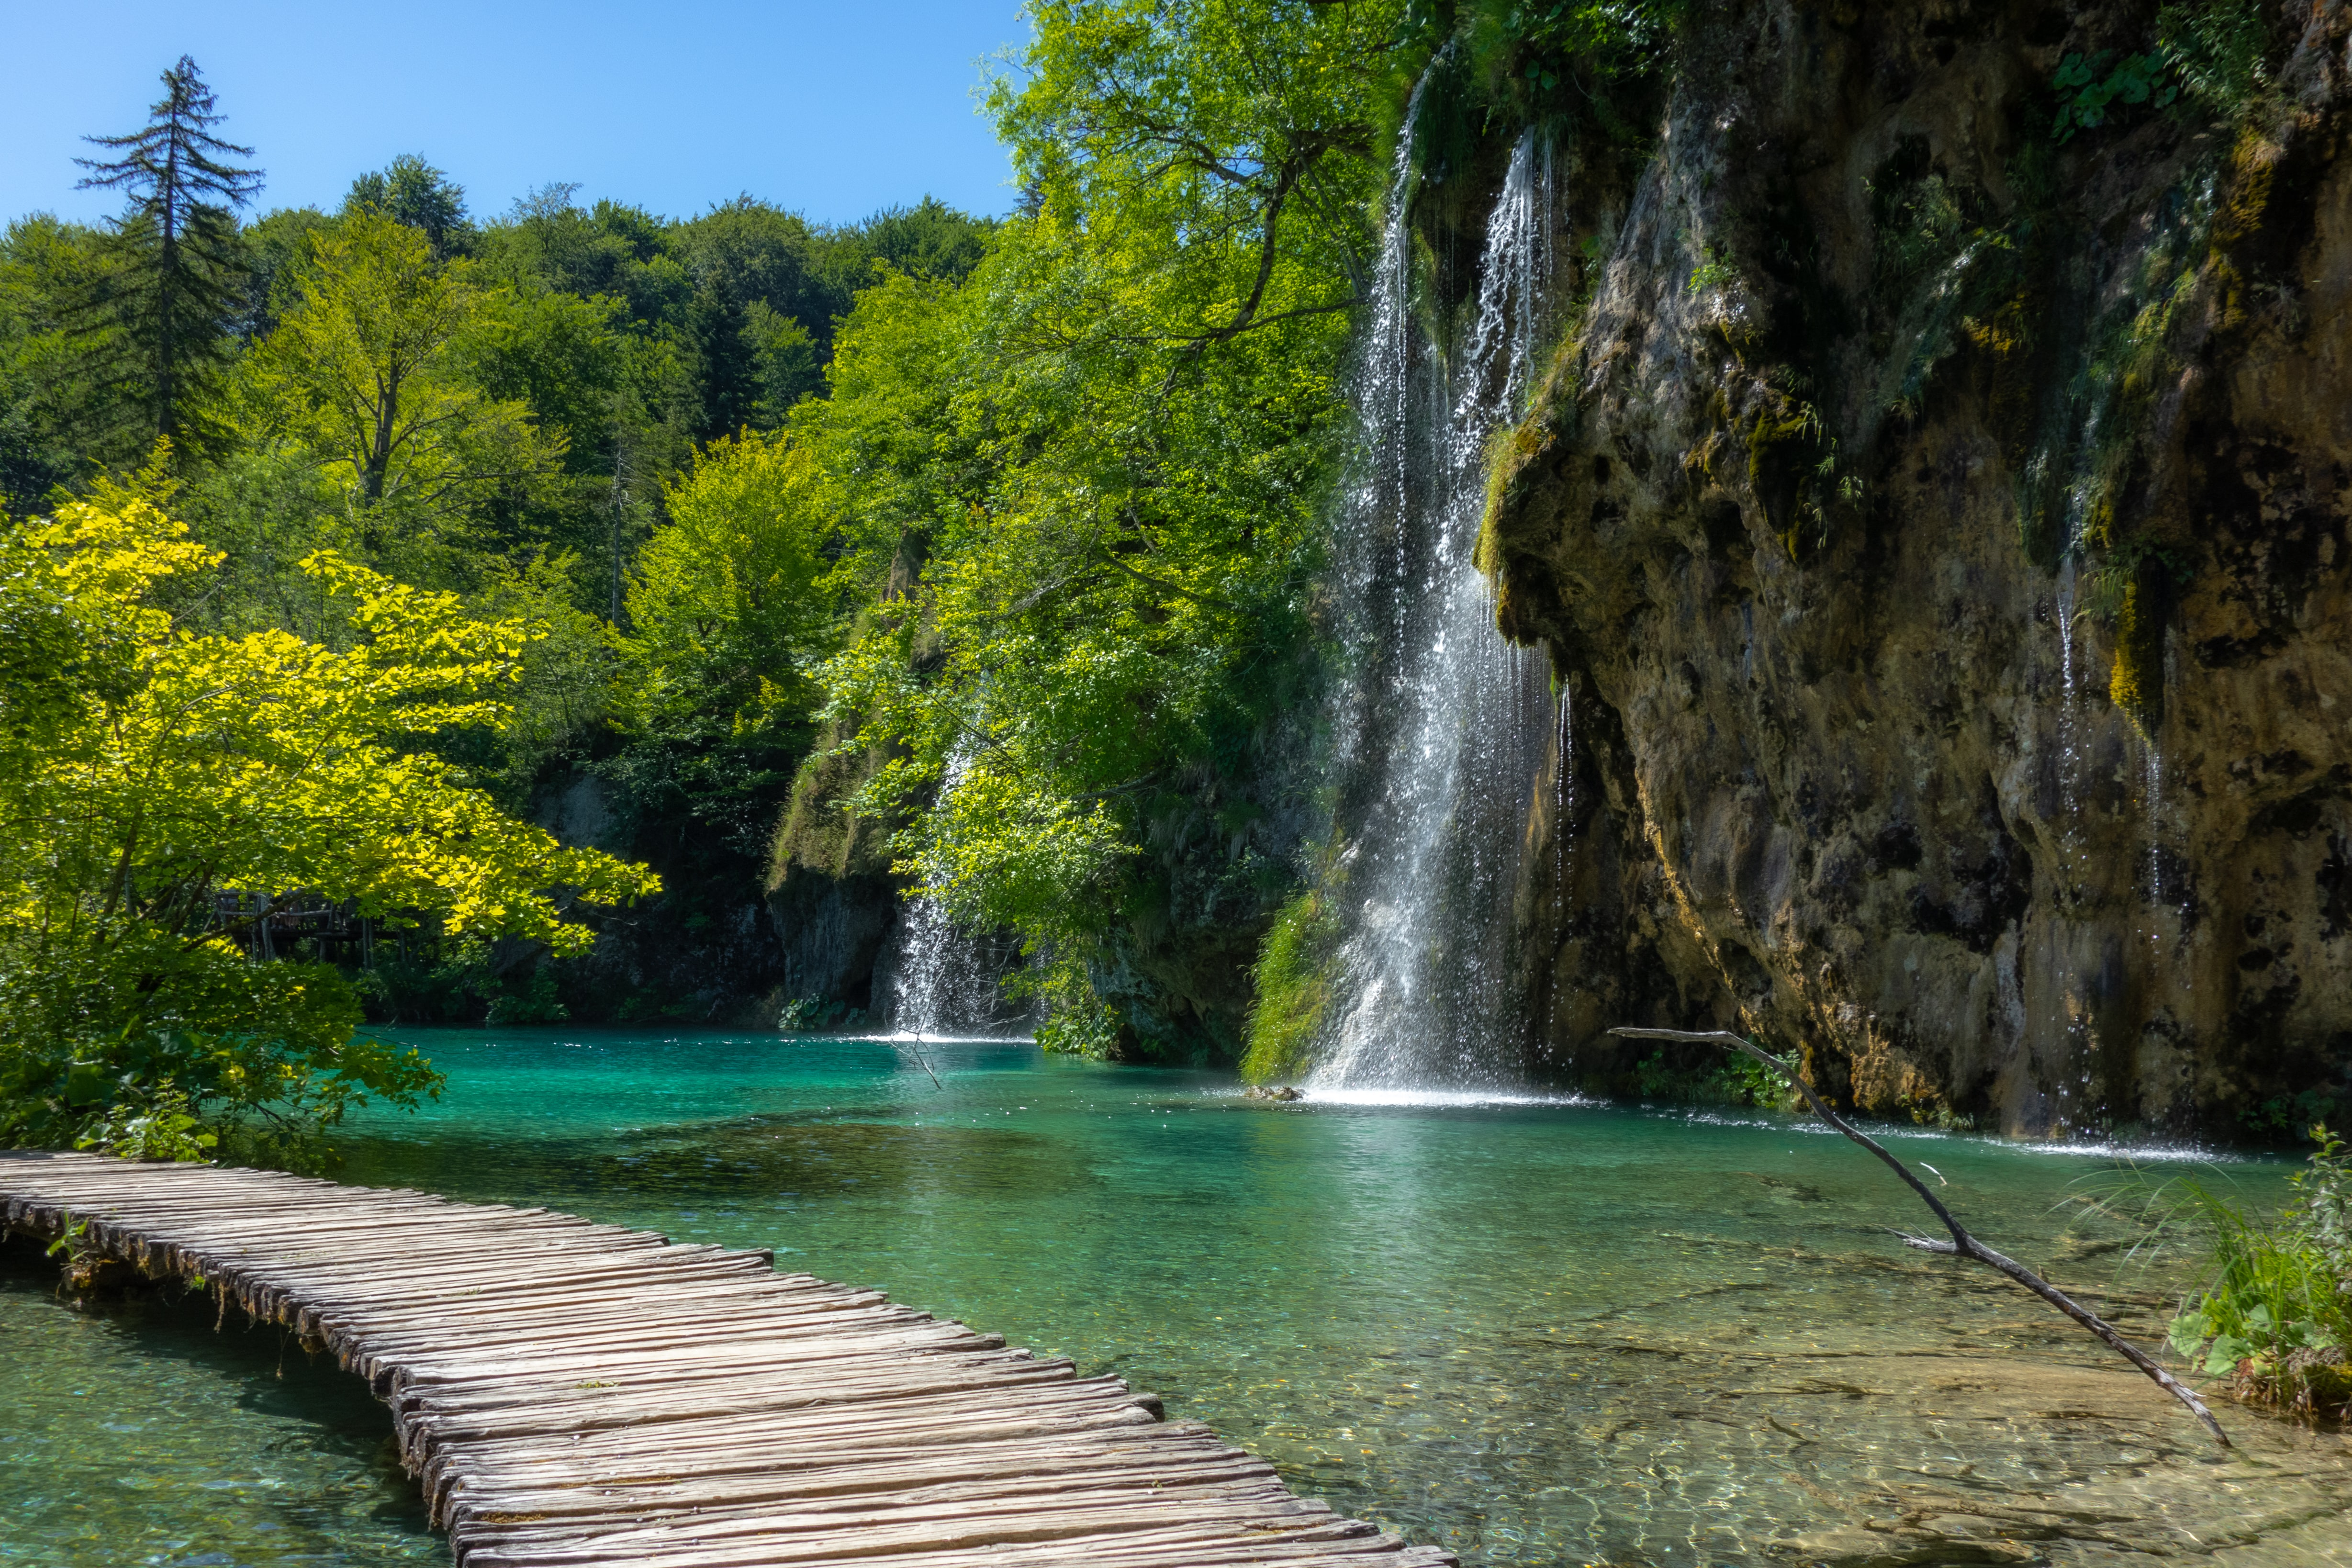 europe, hiking, travel, tips, localbini, biniblog, adventure, experience, local, authentic, mountains, scenery, croatia, national park. lakes, waterfall